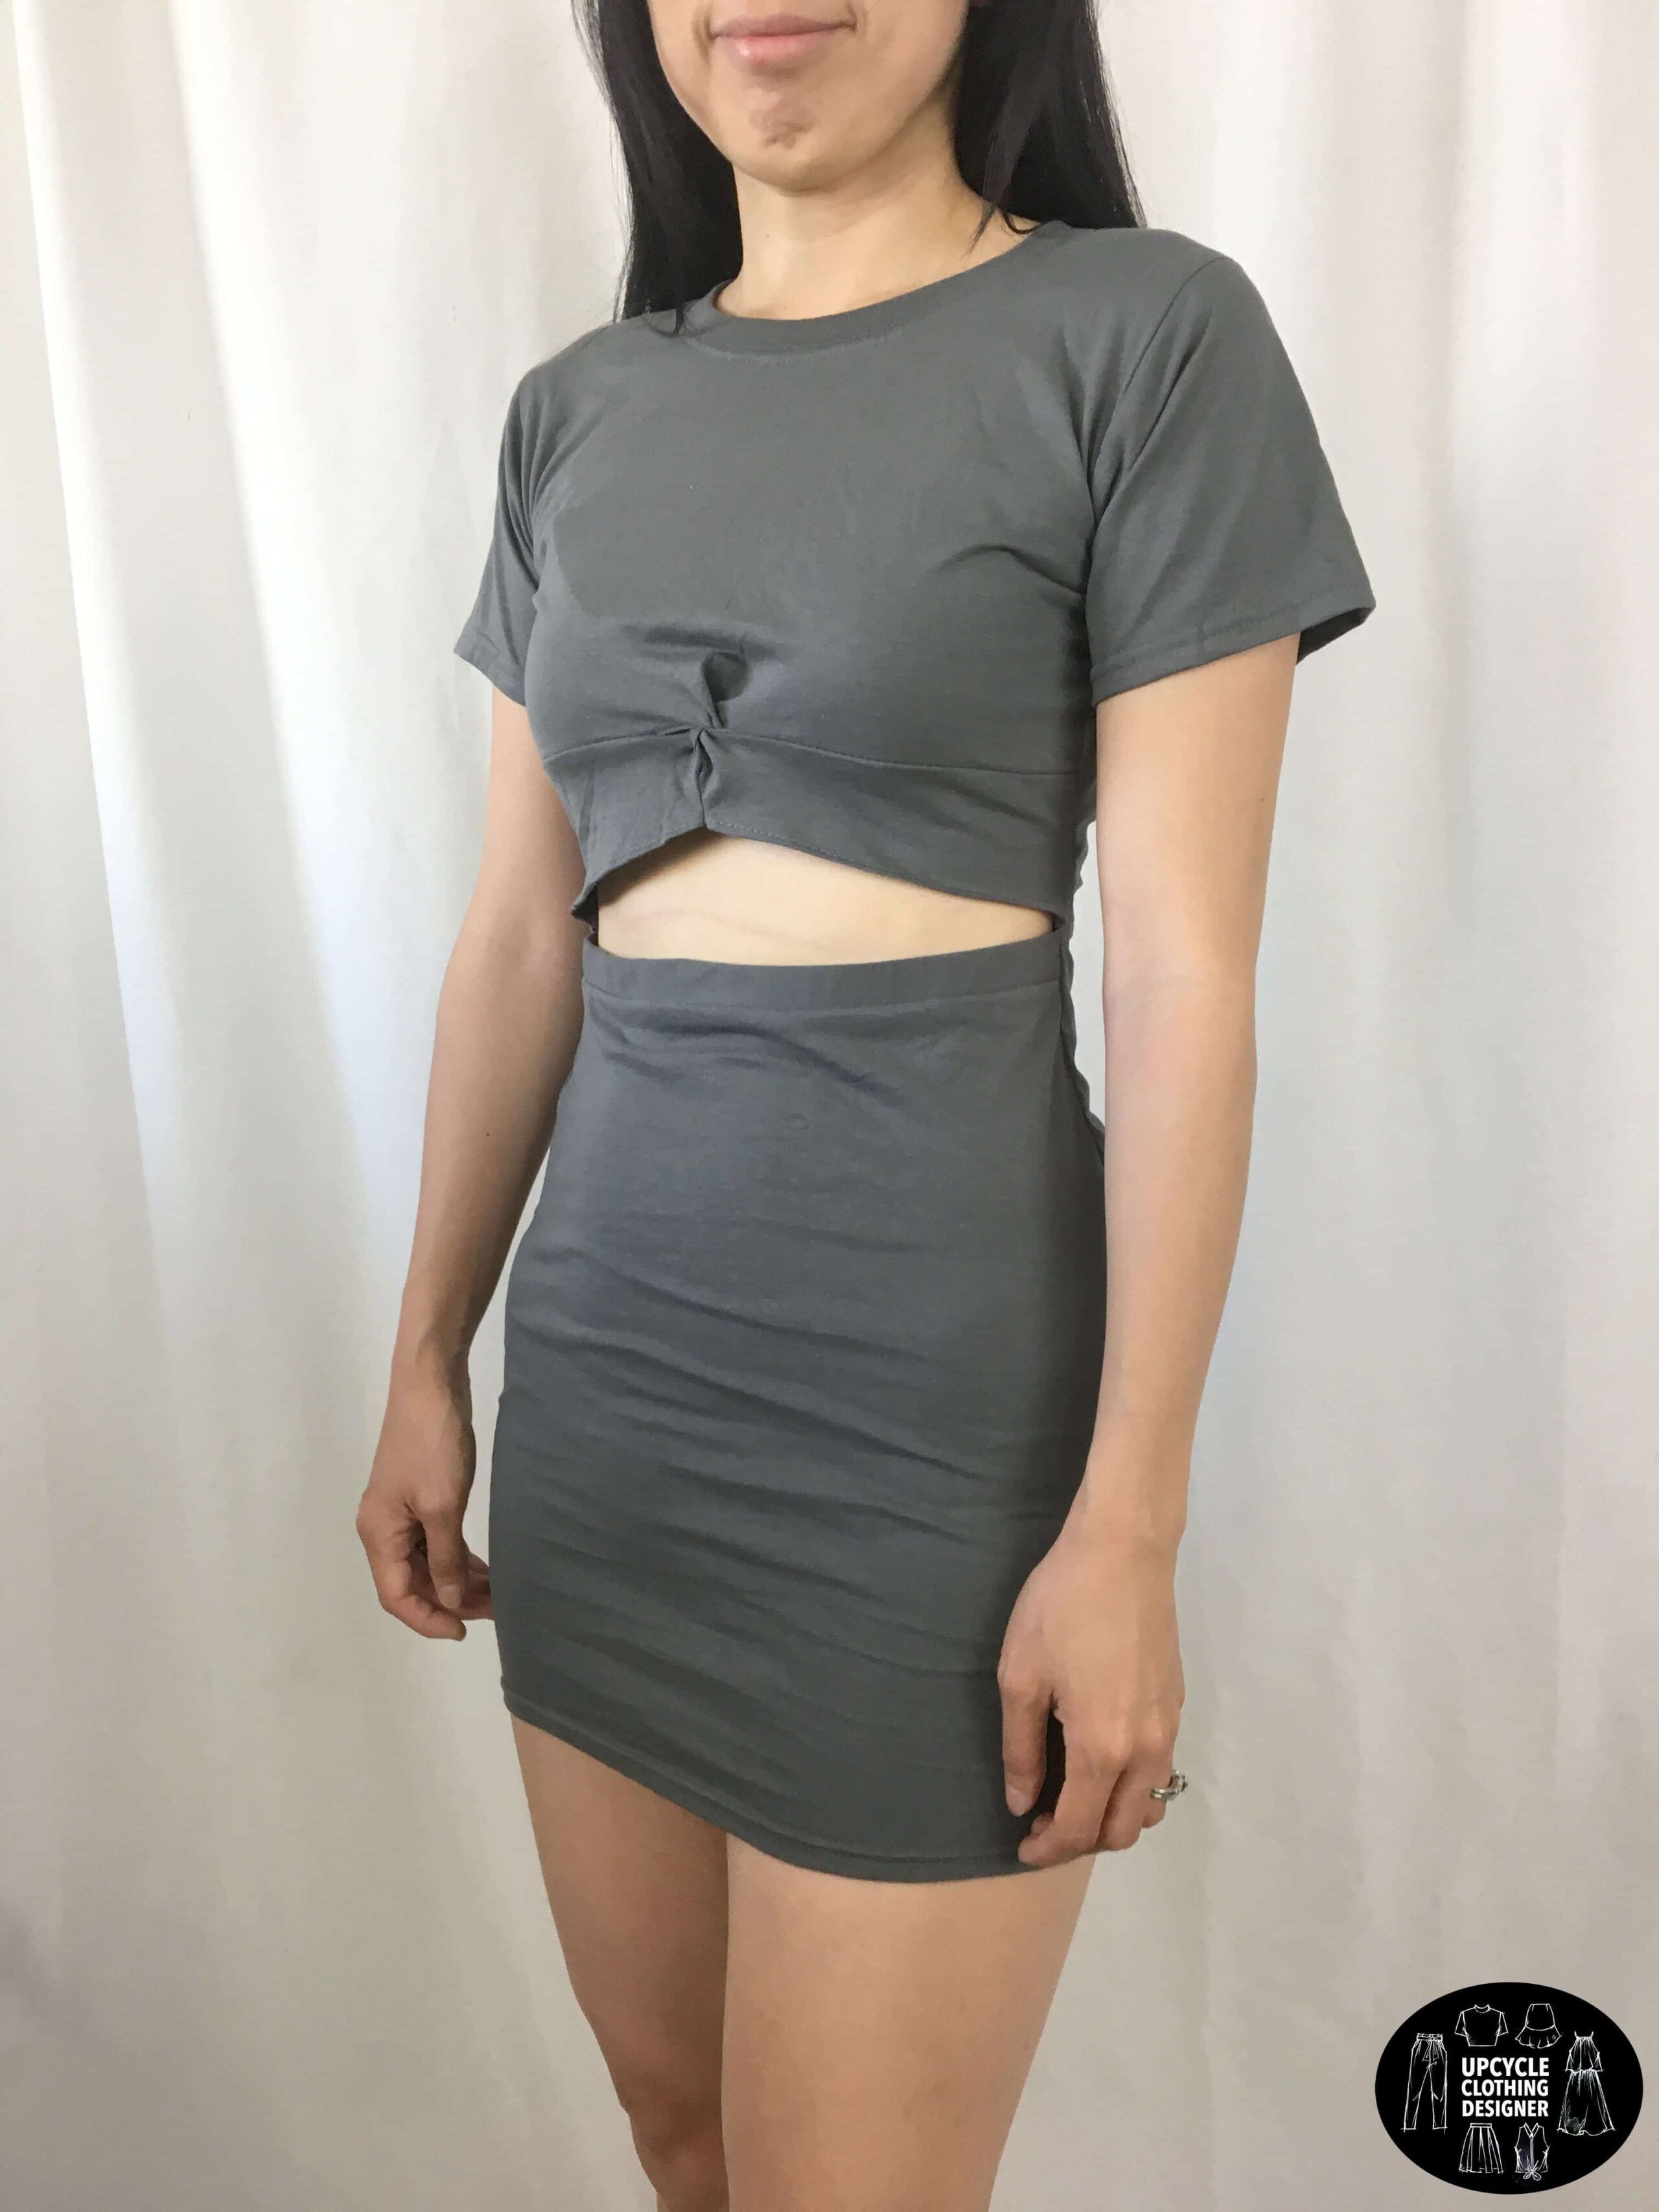 DIY twist front dress from t-shirt sideview